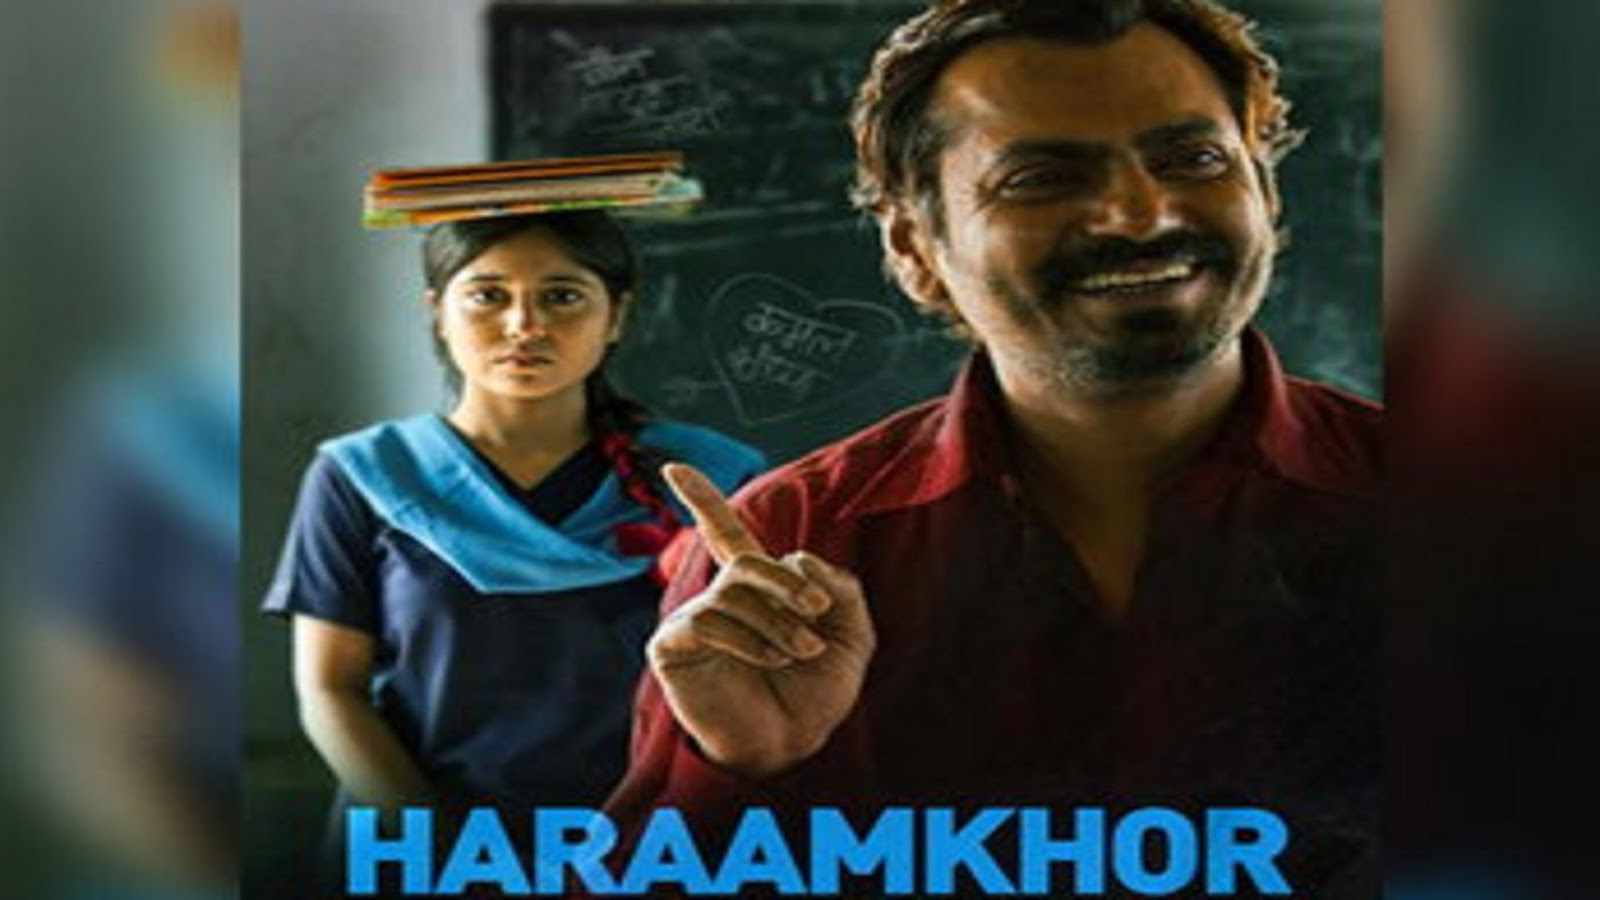 Complete cast and crew of Haraamkhor (2016) bollywood hindi movie wiki, poster, Trailer, music list - Nawazuddin Siddiquie, Movie release date 13 Jan, 2017